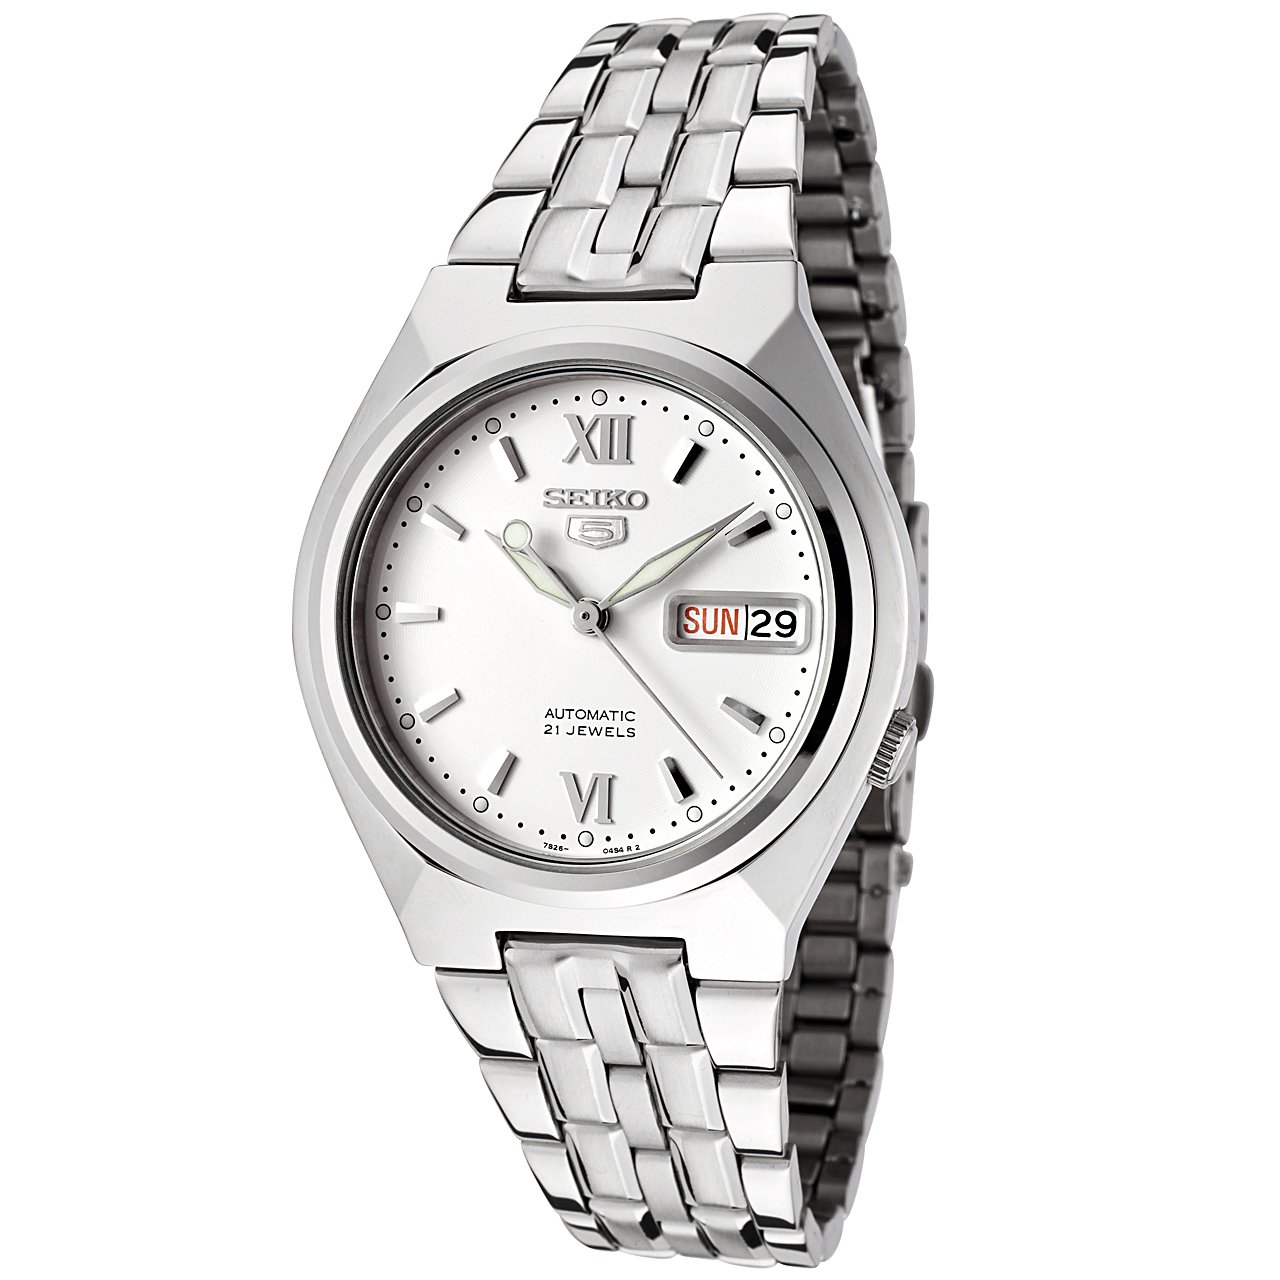 1581d54c6aa Amazon.com  Seiko Men s SNK315K Automatic Stainless Steel Watch  Seiko   Watches